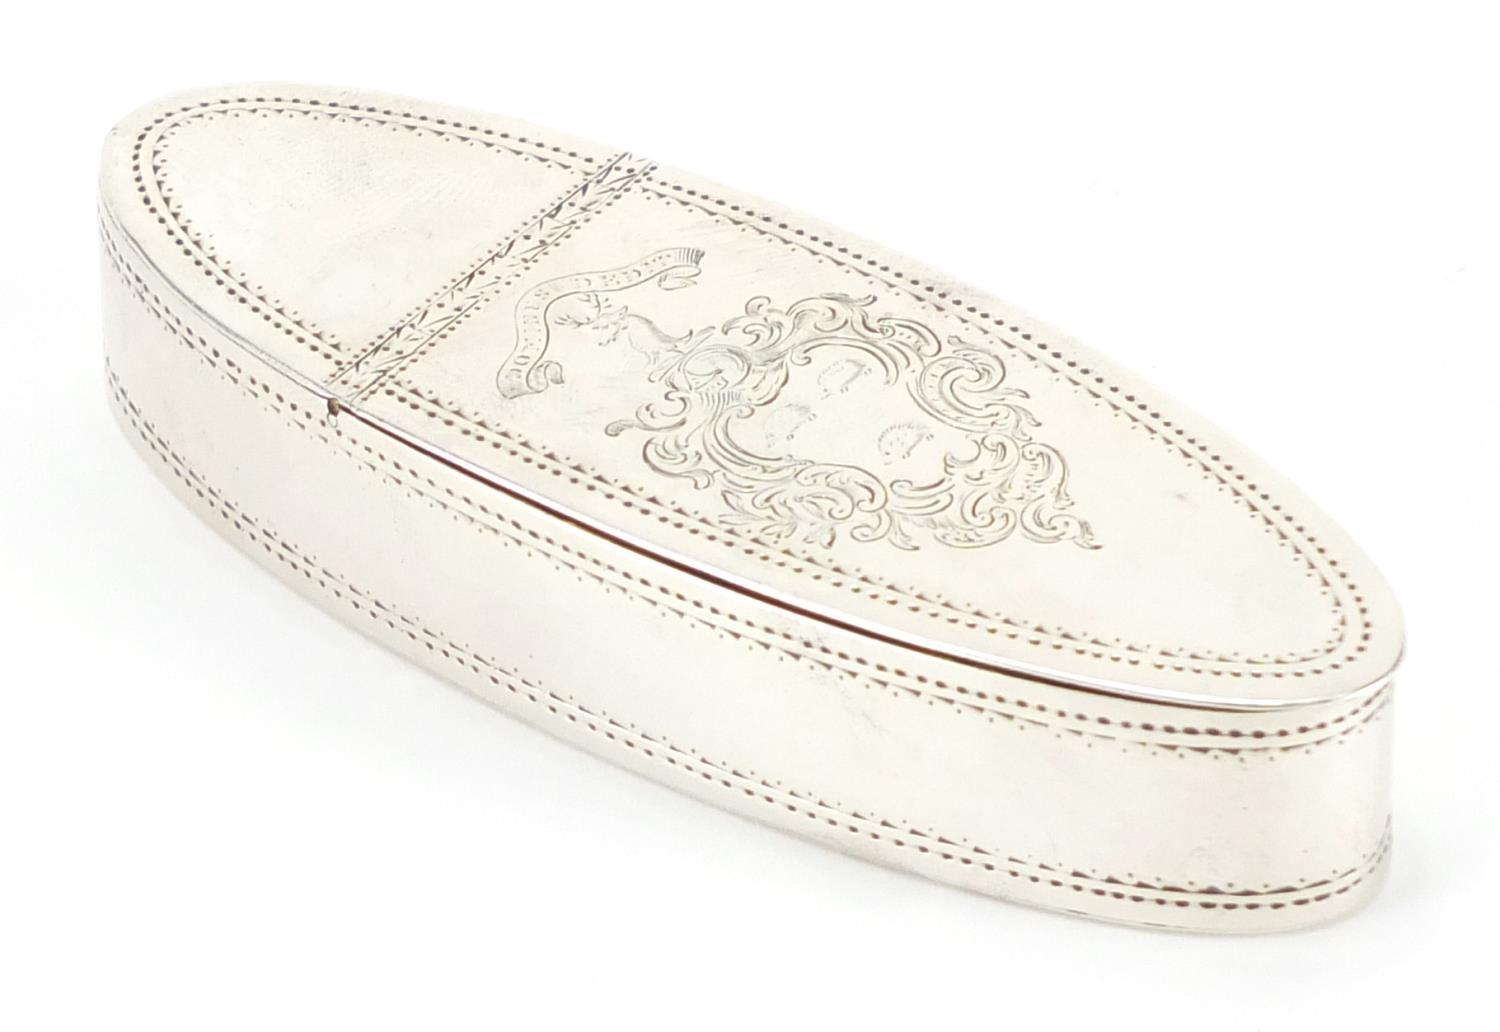 Lot 18 - Georgian silver snuff box with gilt interior, the hinged lid with engraved family crest and engraved